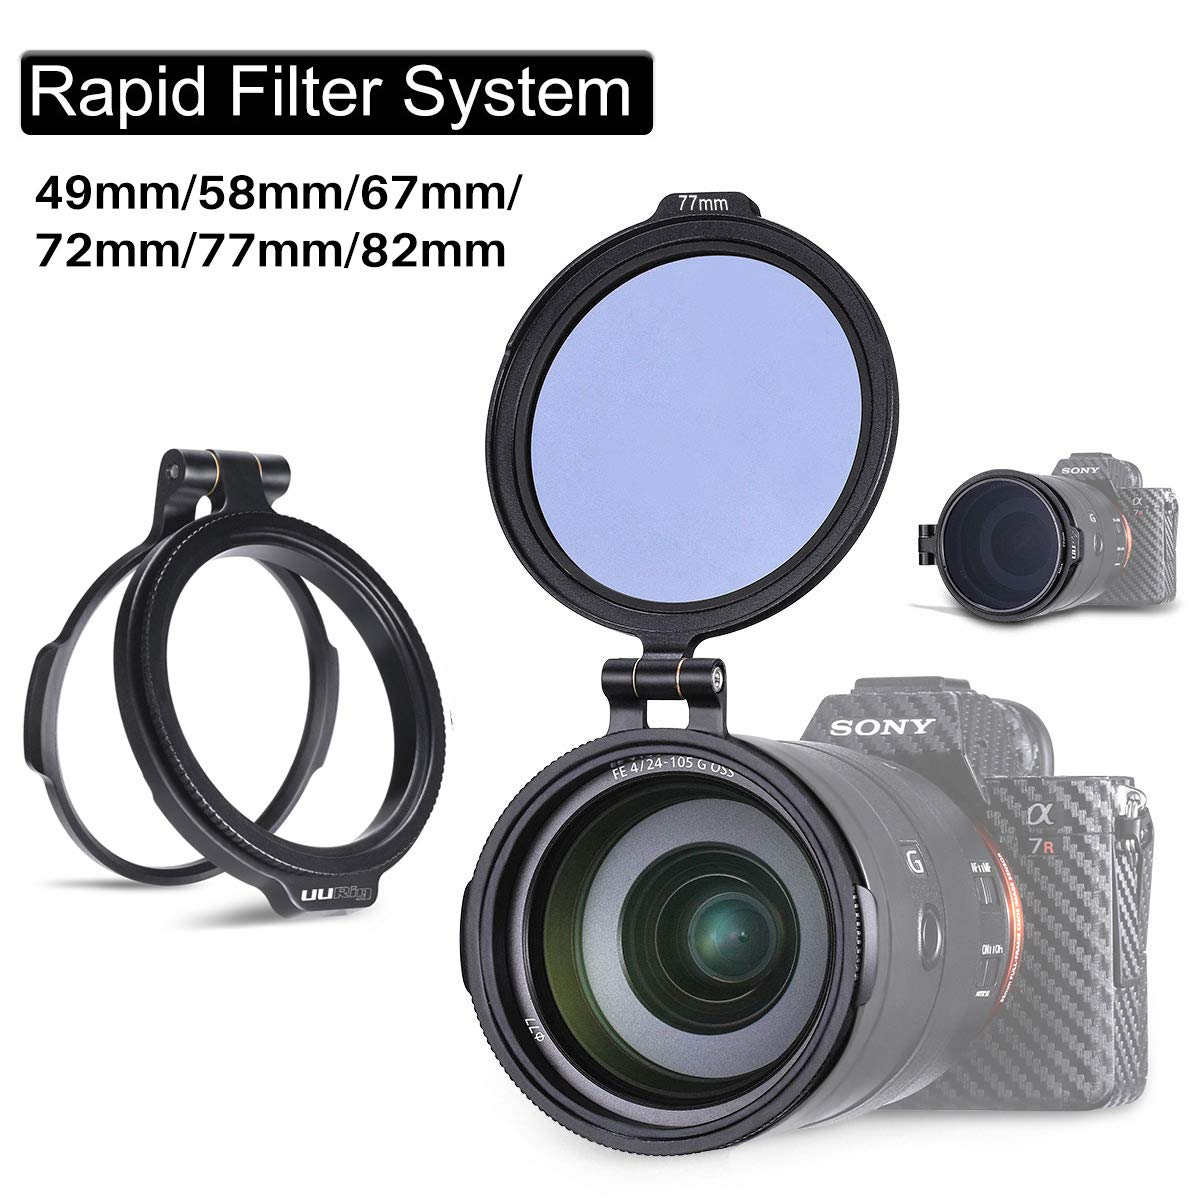 49//58//67//72//77//82mm Available Filter Ring Adapter Camera Lens Filter Metal Stepping Ring Rapid Filter System Compatible for Canon Nikon Sony Olympus DSLR Camera 1 Pack